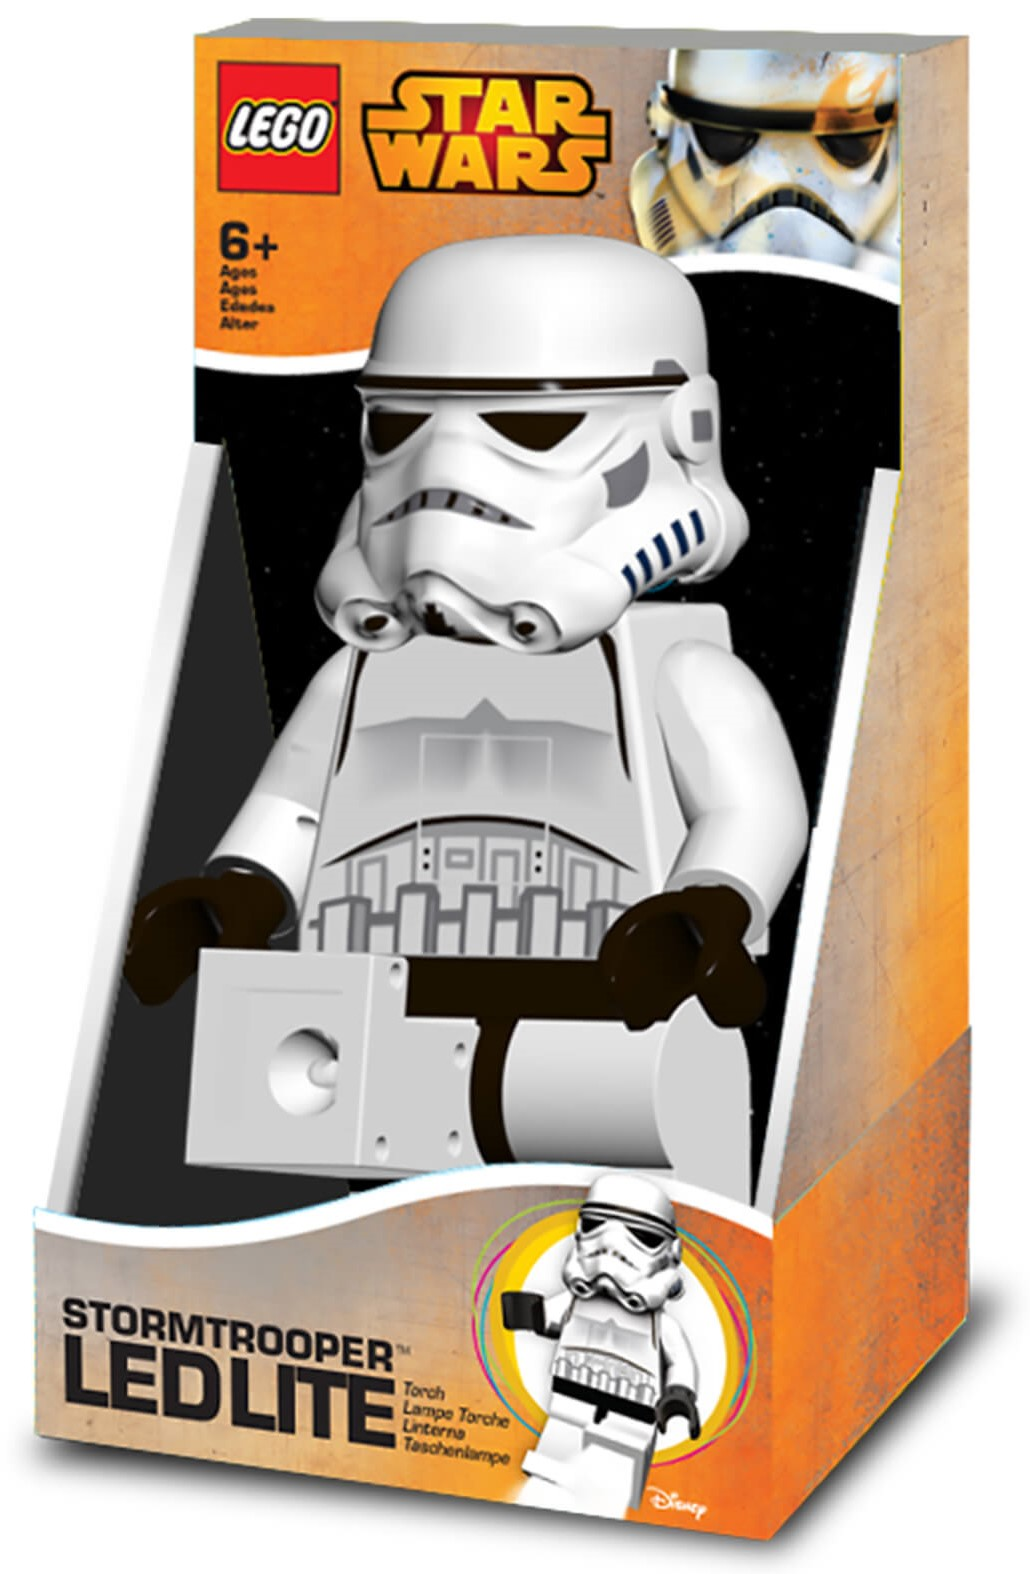 LEGO STAR WARS Disney Stormtrooper Torch LEDLite NEW